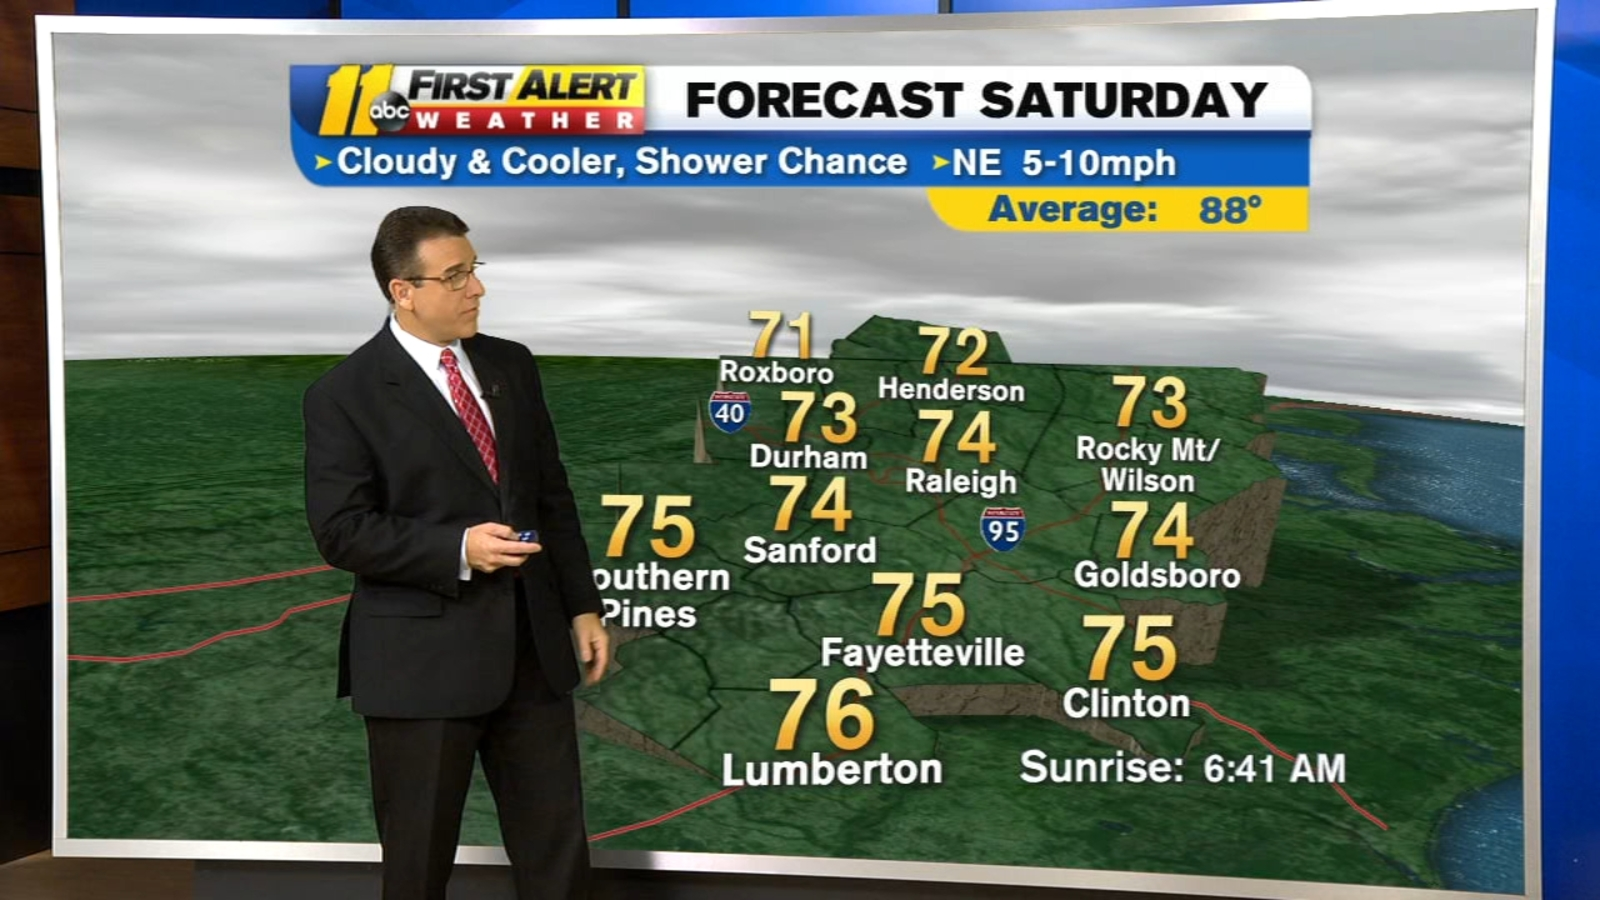 Weather Forecast for the Triangle, Raleigh, Durham, Fayetteville, Cary